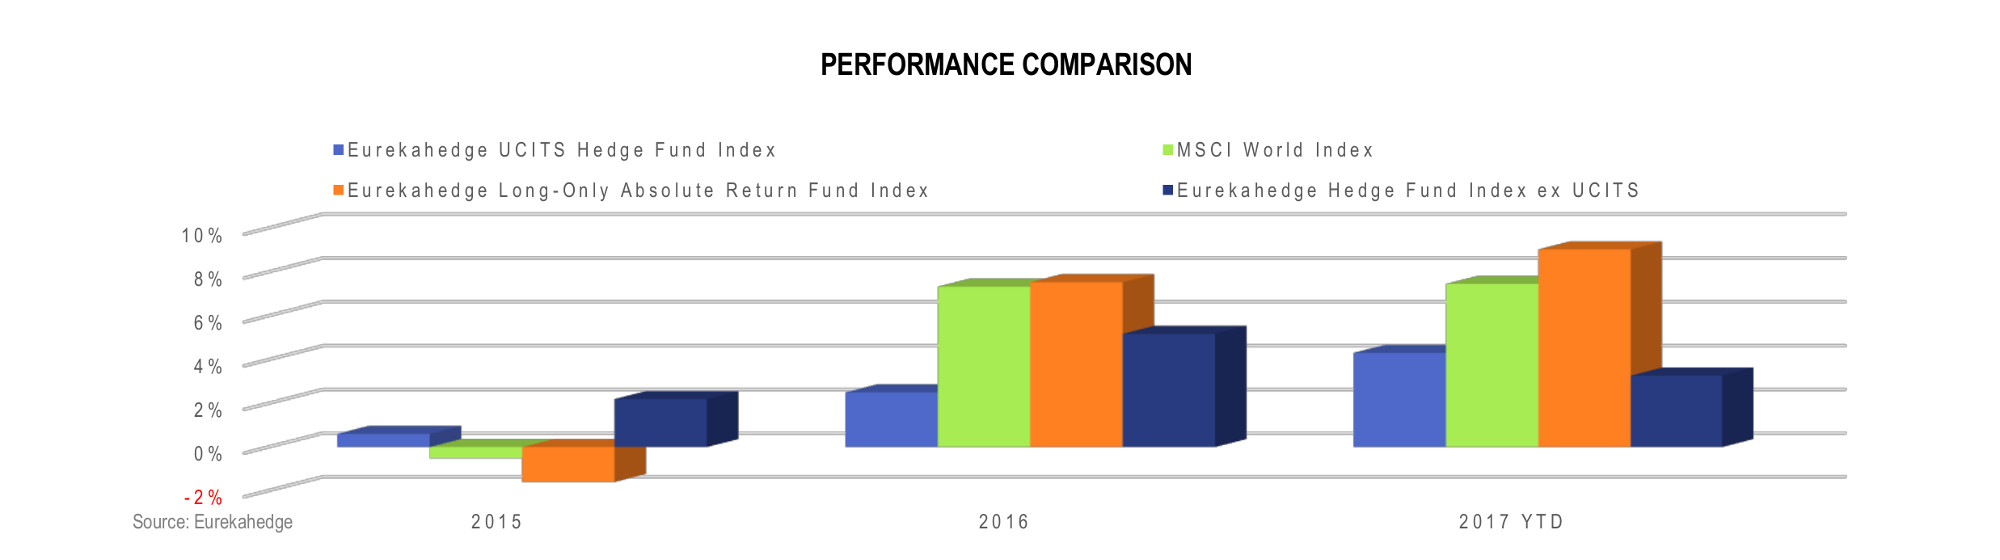 UCITS Hedge Fund Infographic July 2017 - Performance comparison